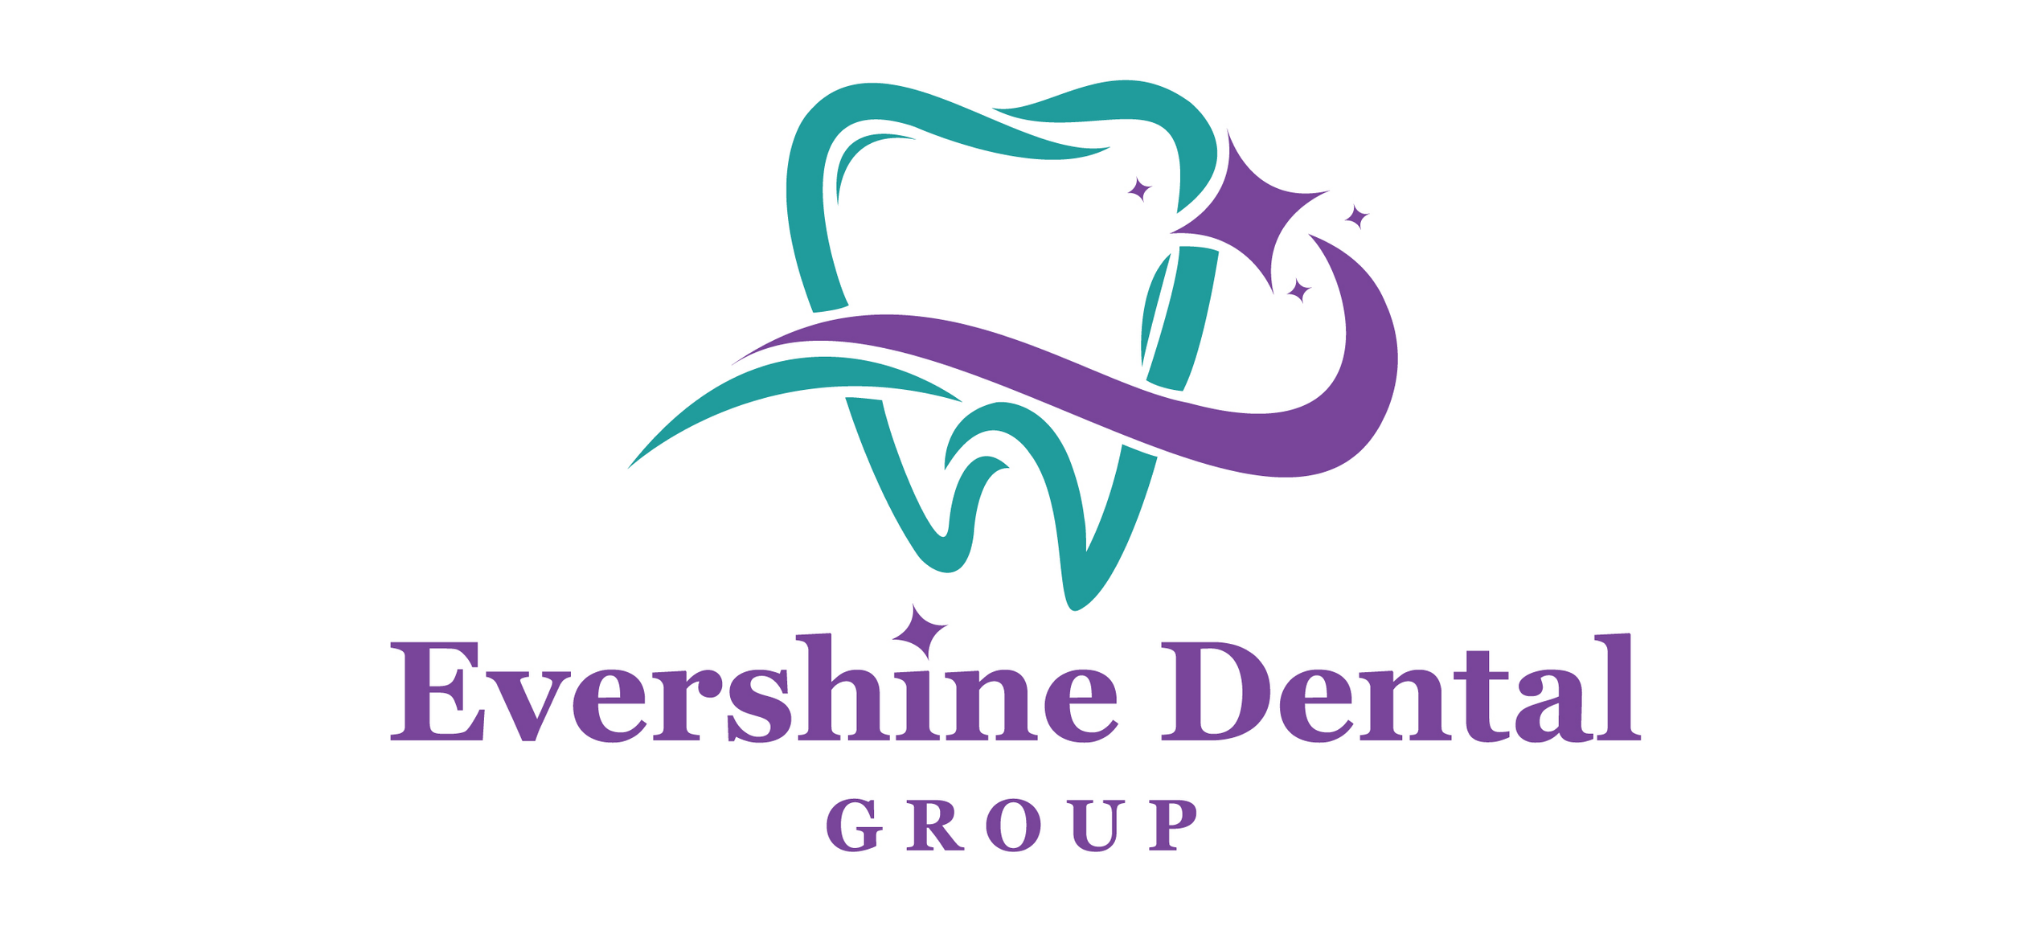 Evershine Dental Group Logo